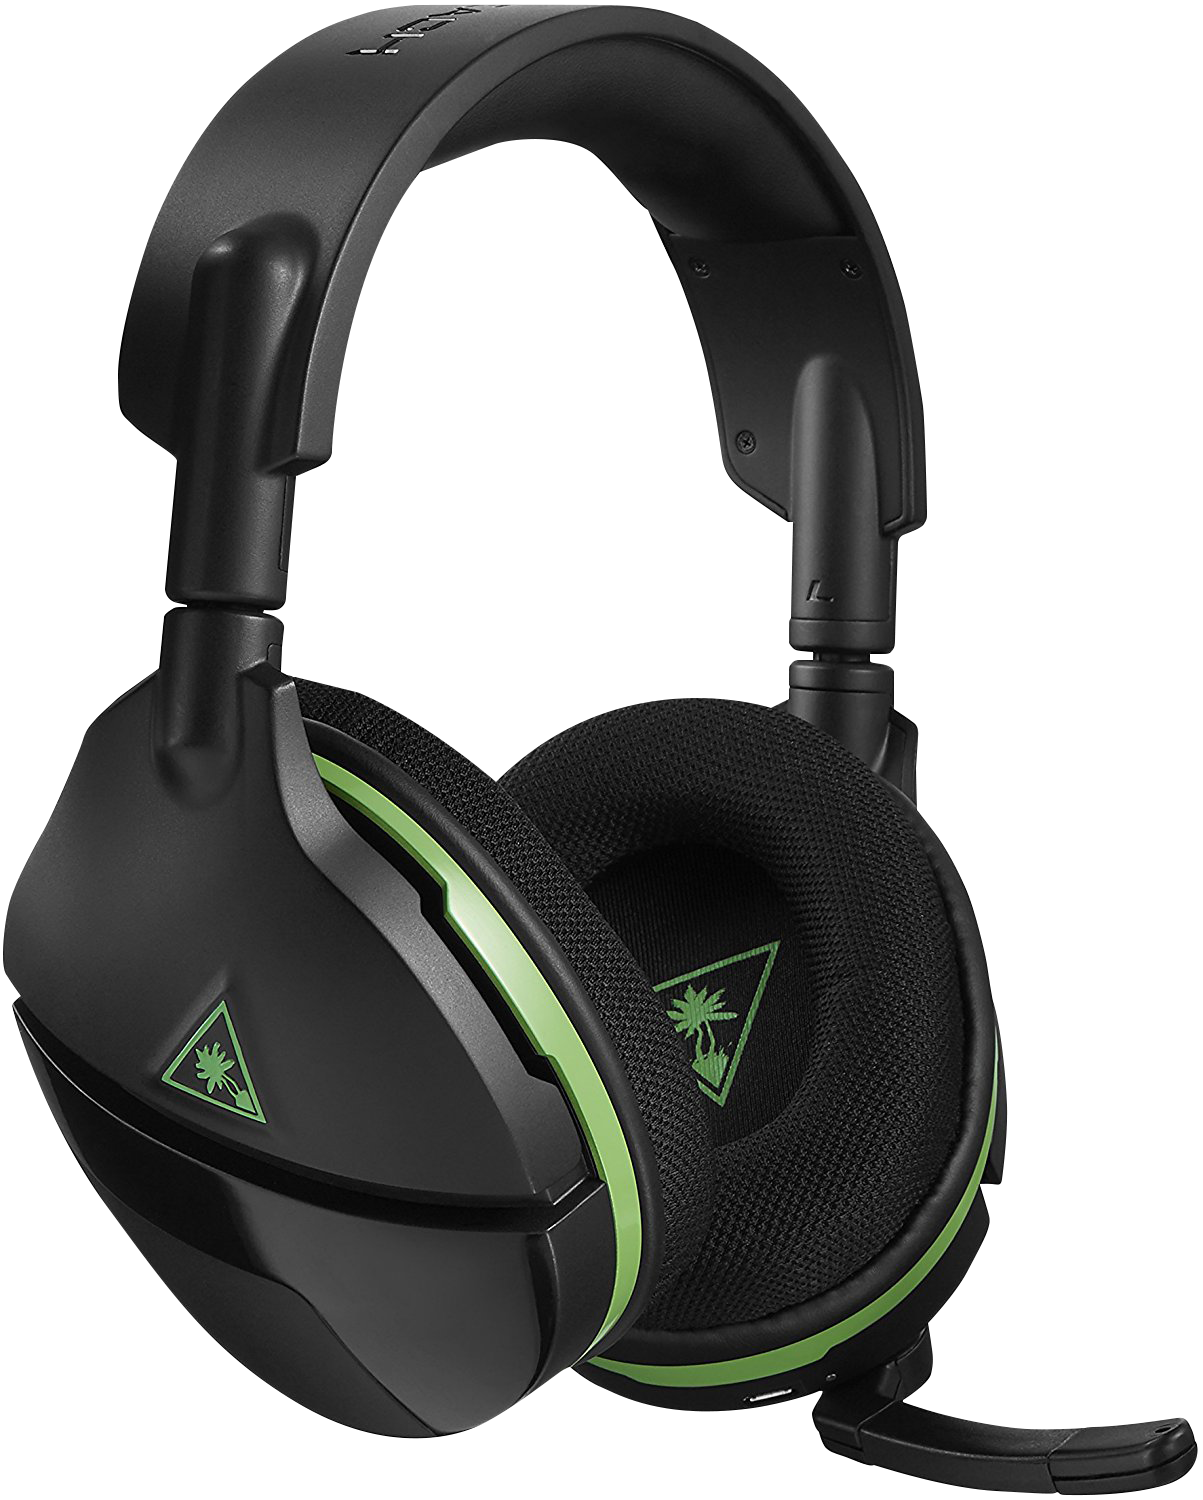 RWaMNL?ver=2cd9 - Turtle Beach Stealth 600 Gaming Headset for Xbox One